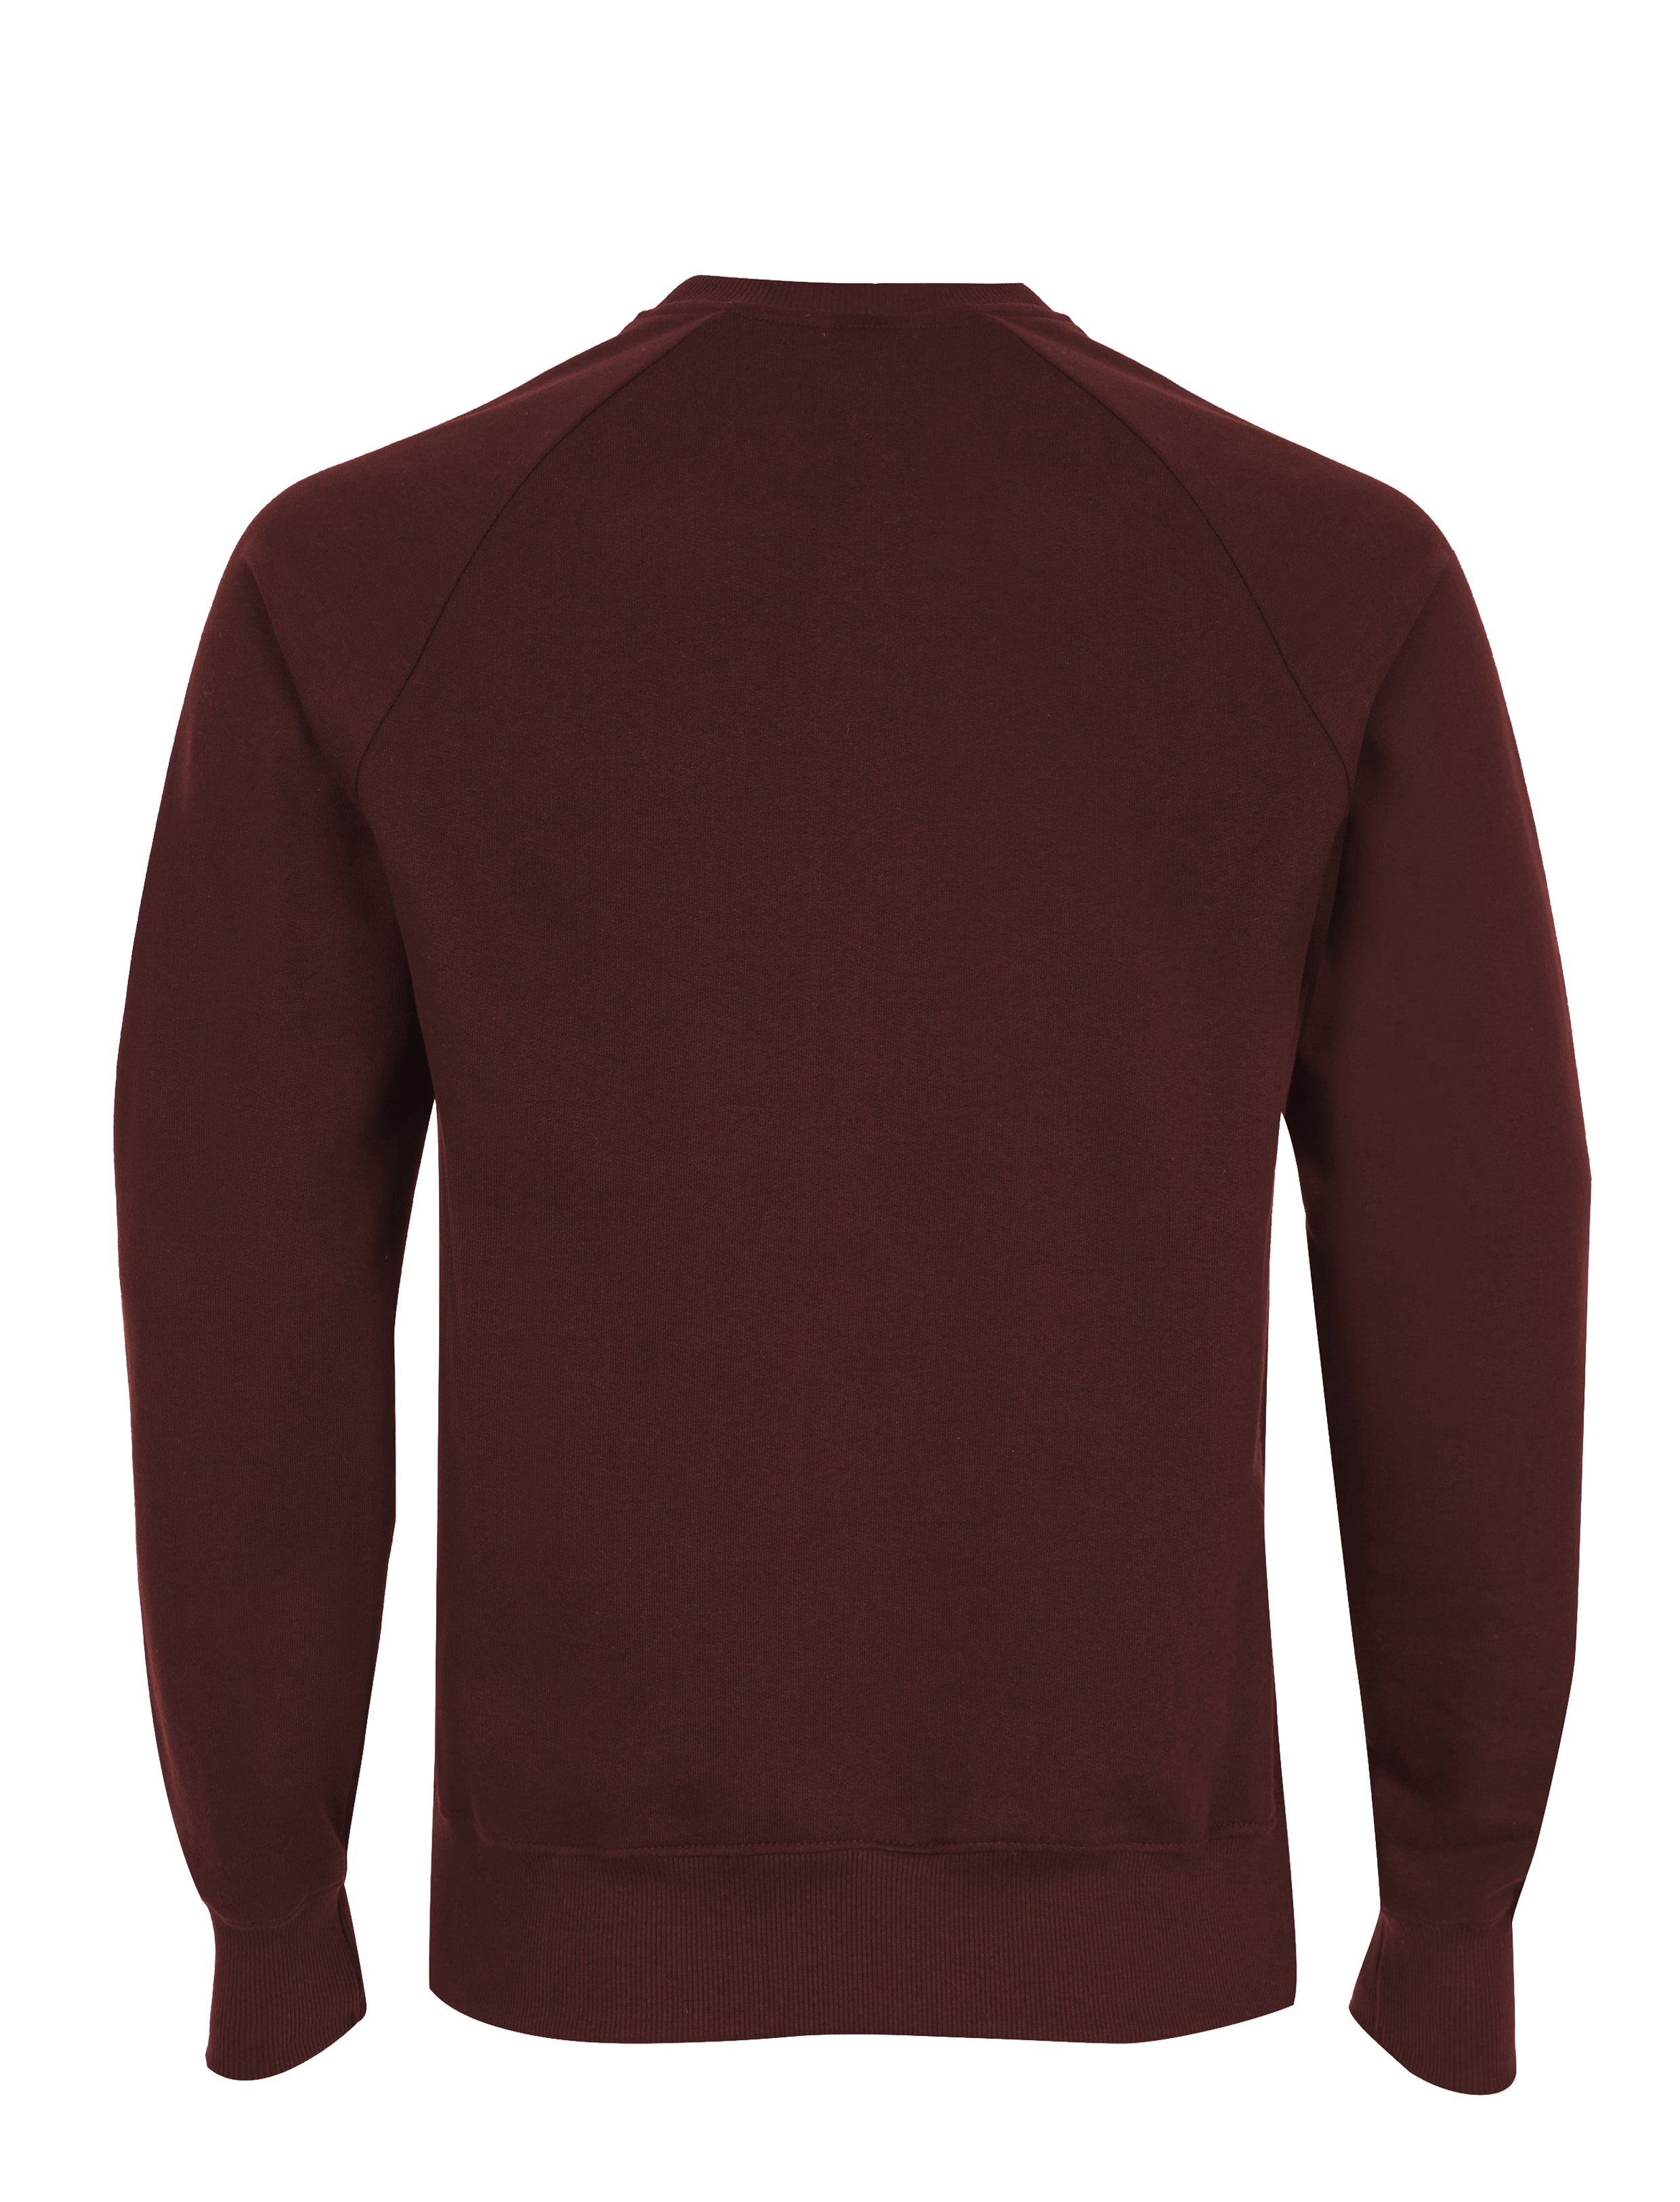 PAIN Sweatshirt Burgundy